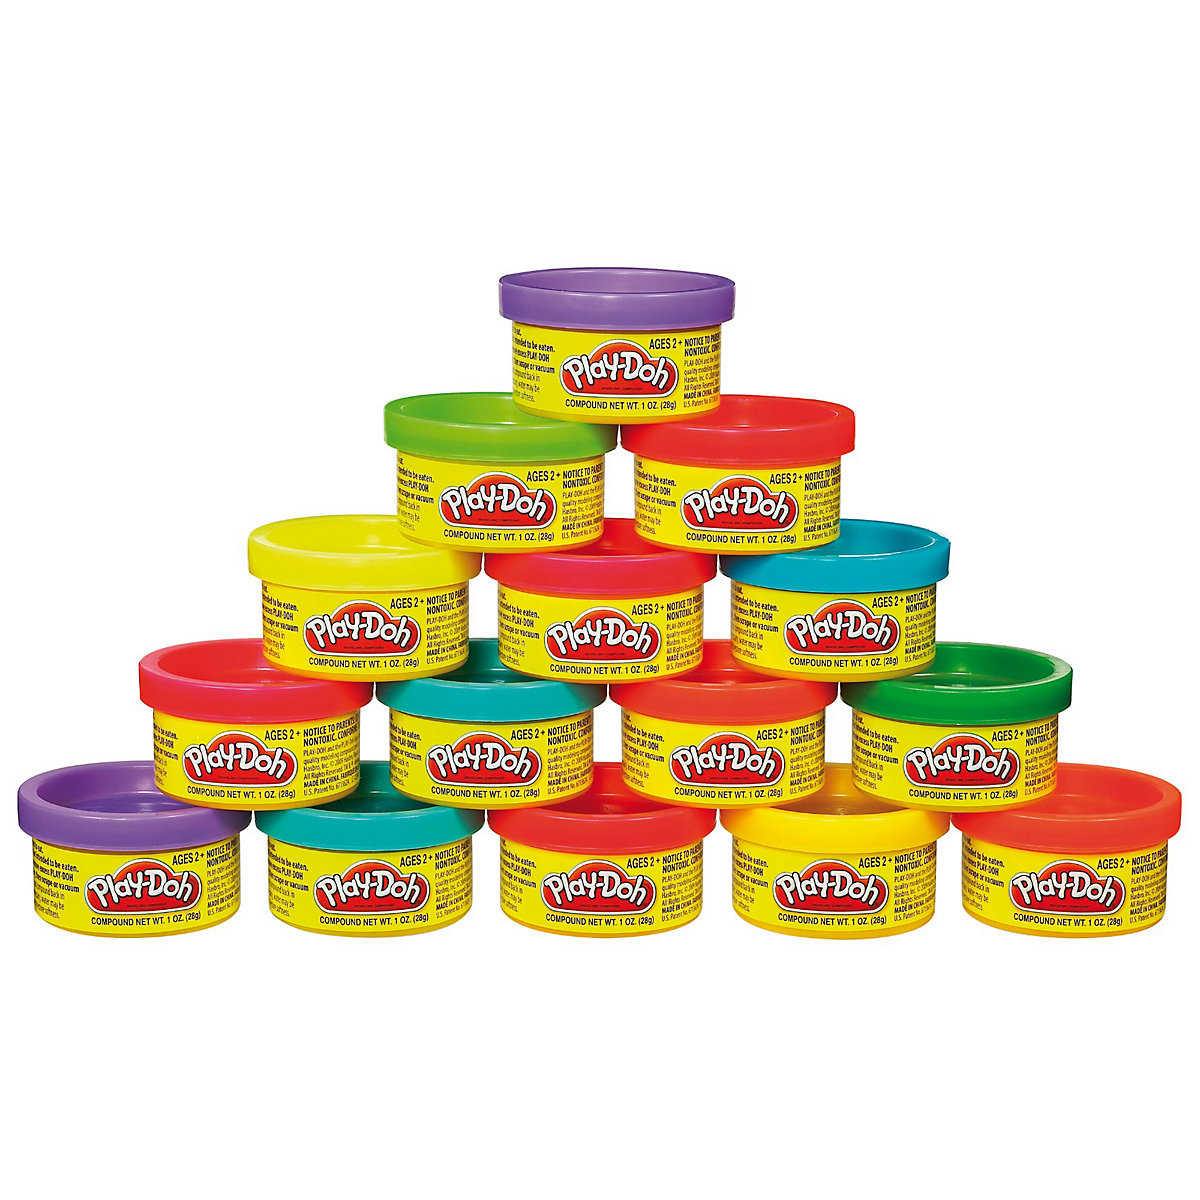 Play-Doh Modeling Clay/Slime 2558558 office plasticine hand gum sculpt kids girl boy girls boys for children play-doh play doh modeling clay slime 8606530 office plasticine hand gum sculpt kids girl boy girls boys for children play doh